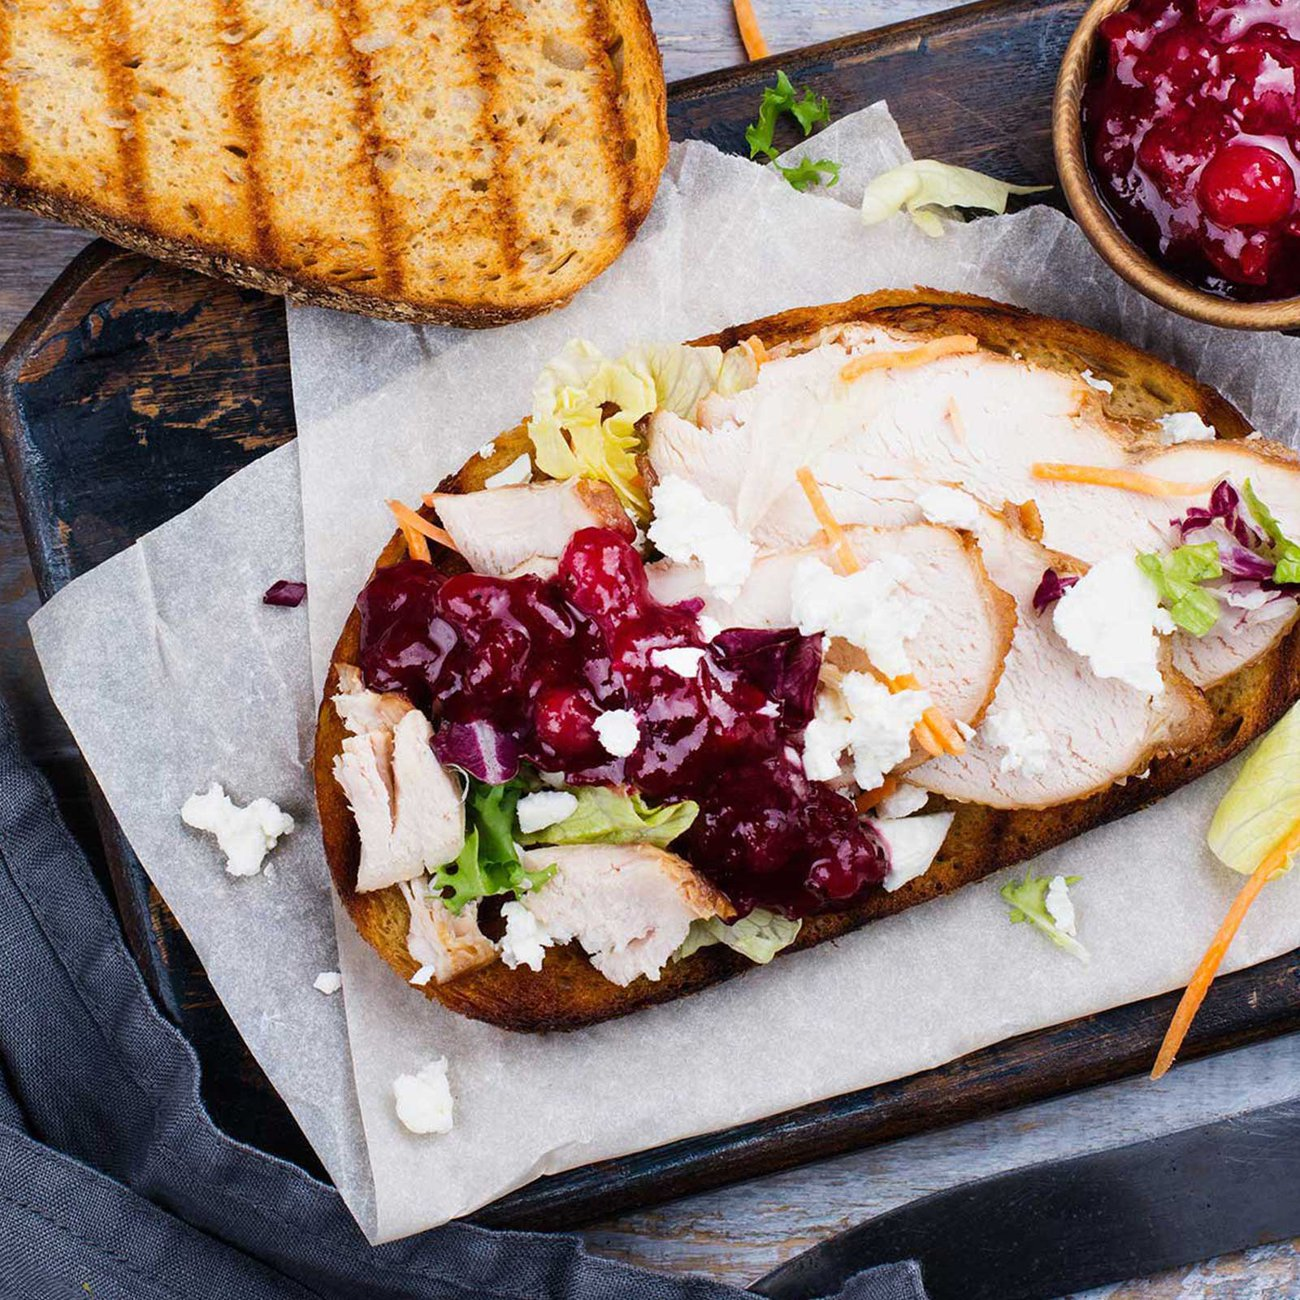 Turkey & Cranberry is a popular combination